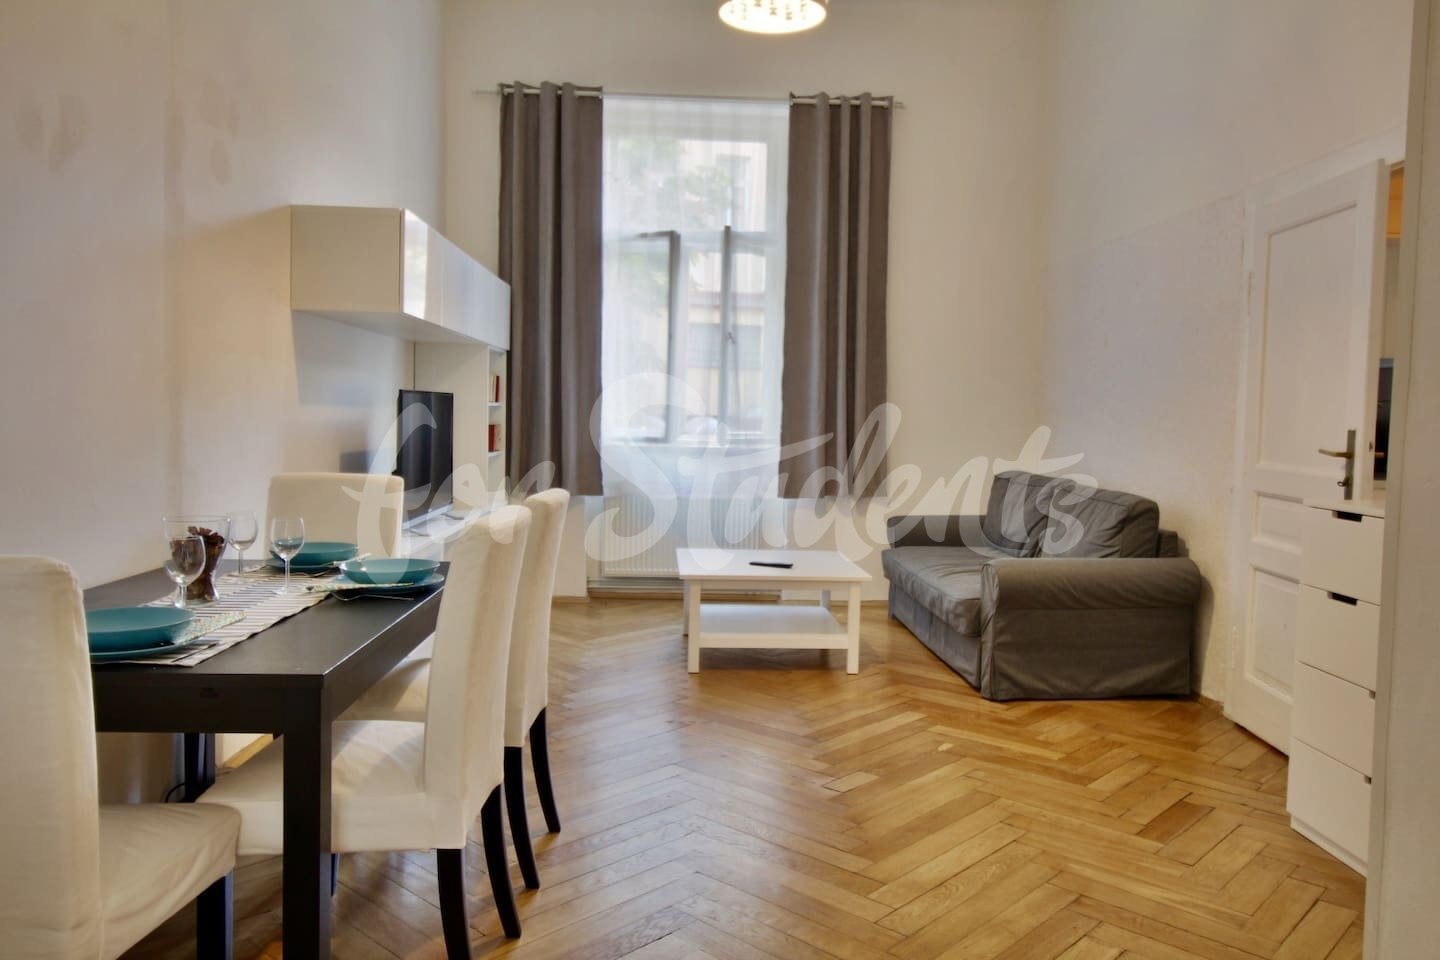 One bedroom apartment near the Old Town